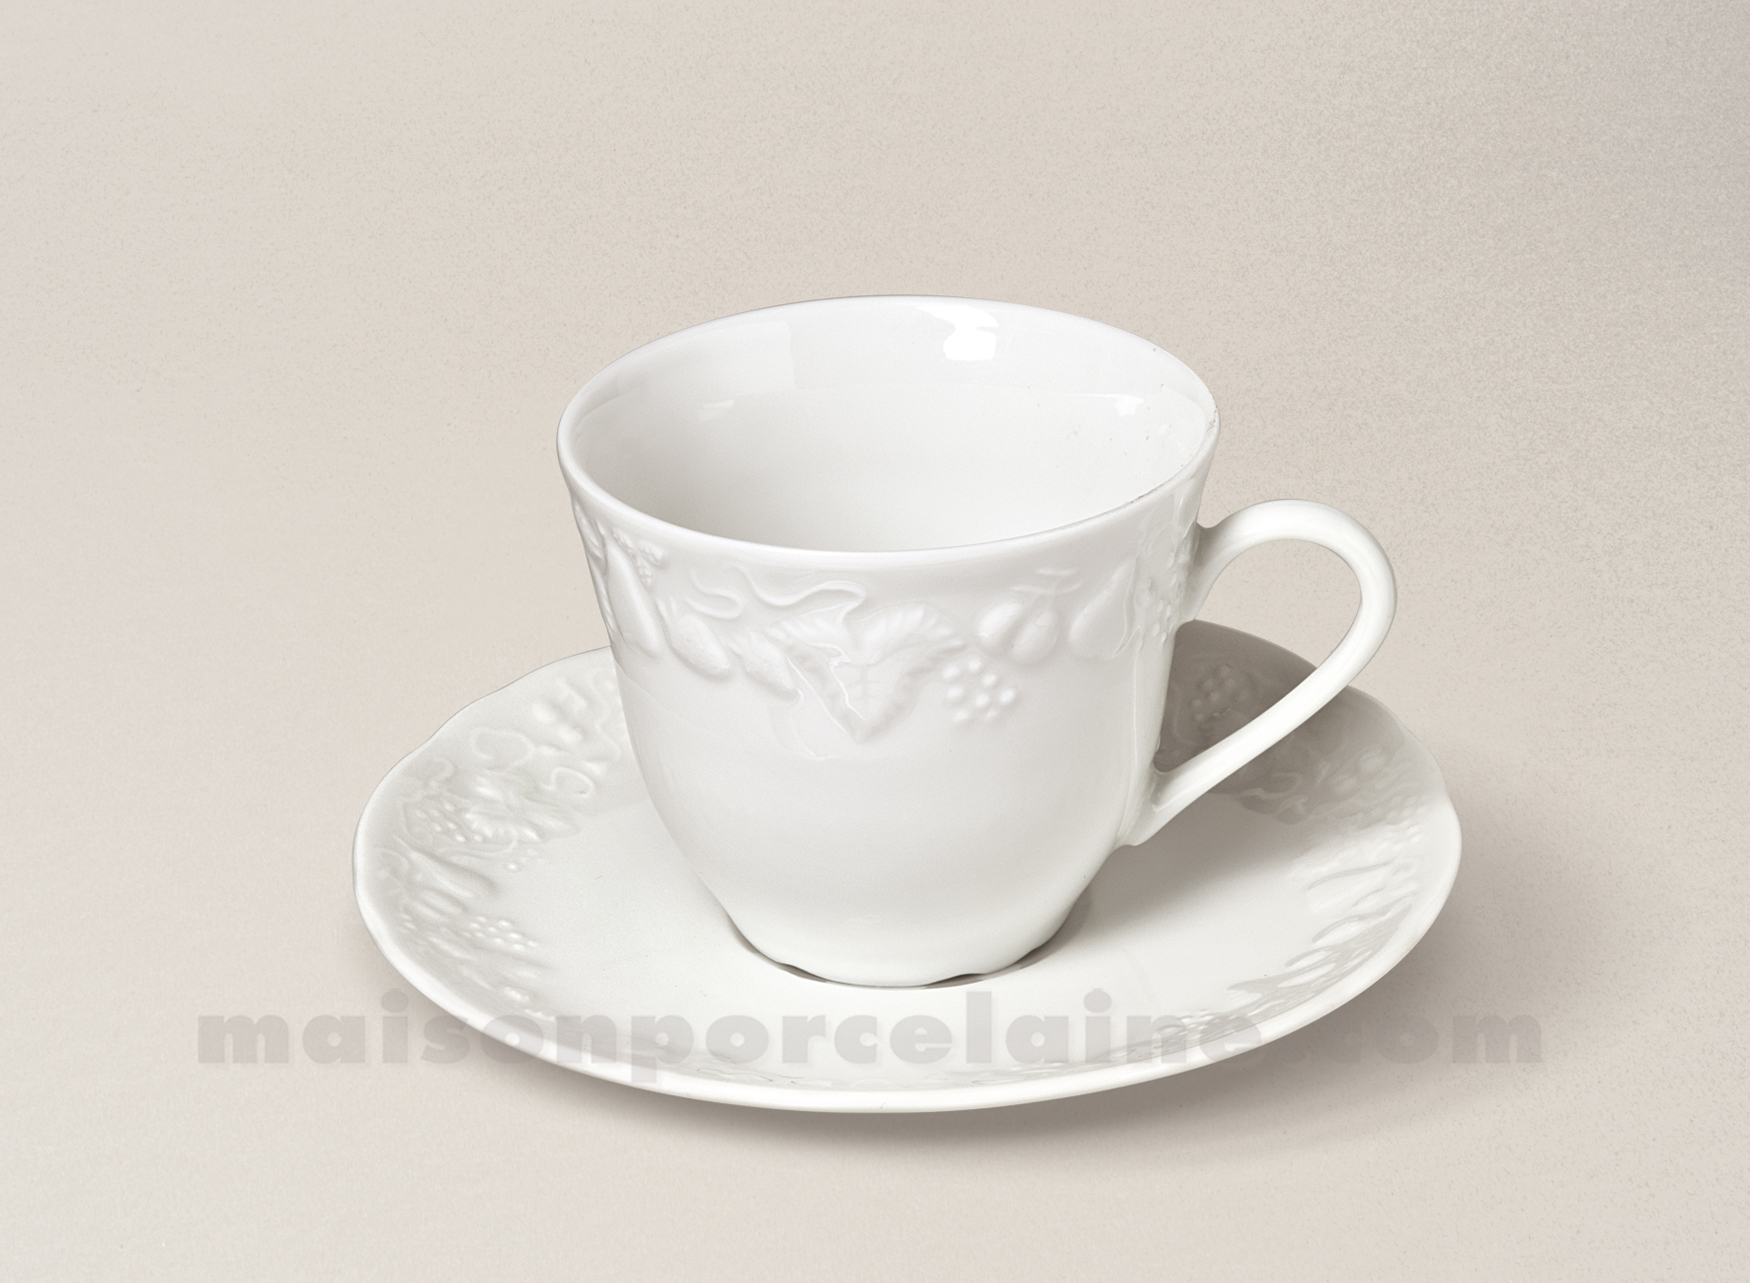 tasse cafe california soucoupe limoges porcelaine blanche limoges 13cl maison de la porcelaine. Black Bedroom Furniture Sets. Home Design Ideas